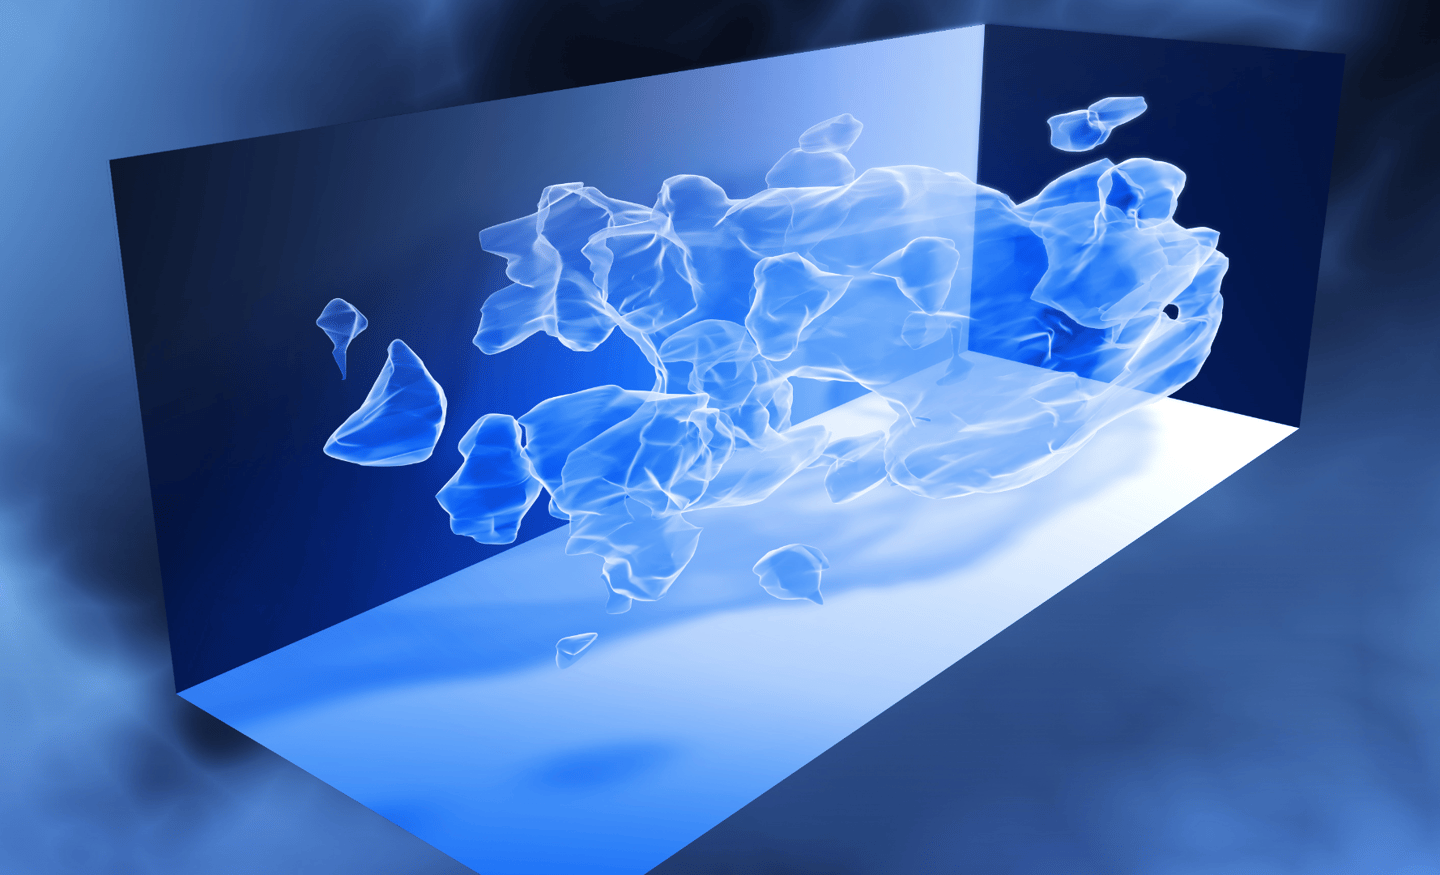 According to a new model, dark matter may be composed of clusters of electrically charged particles bound by a yet-unknown strong interaction